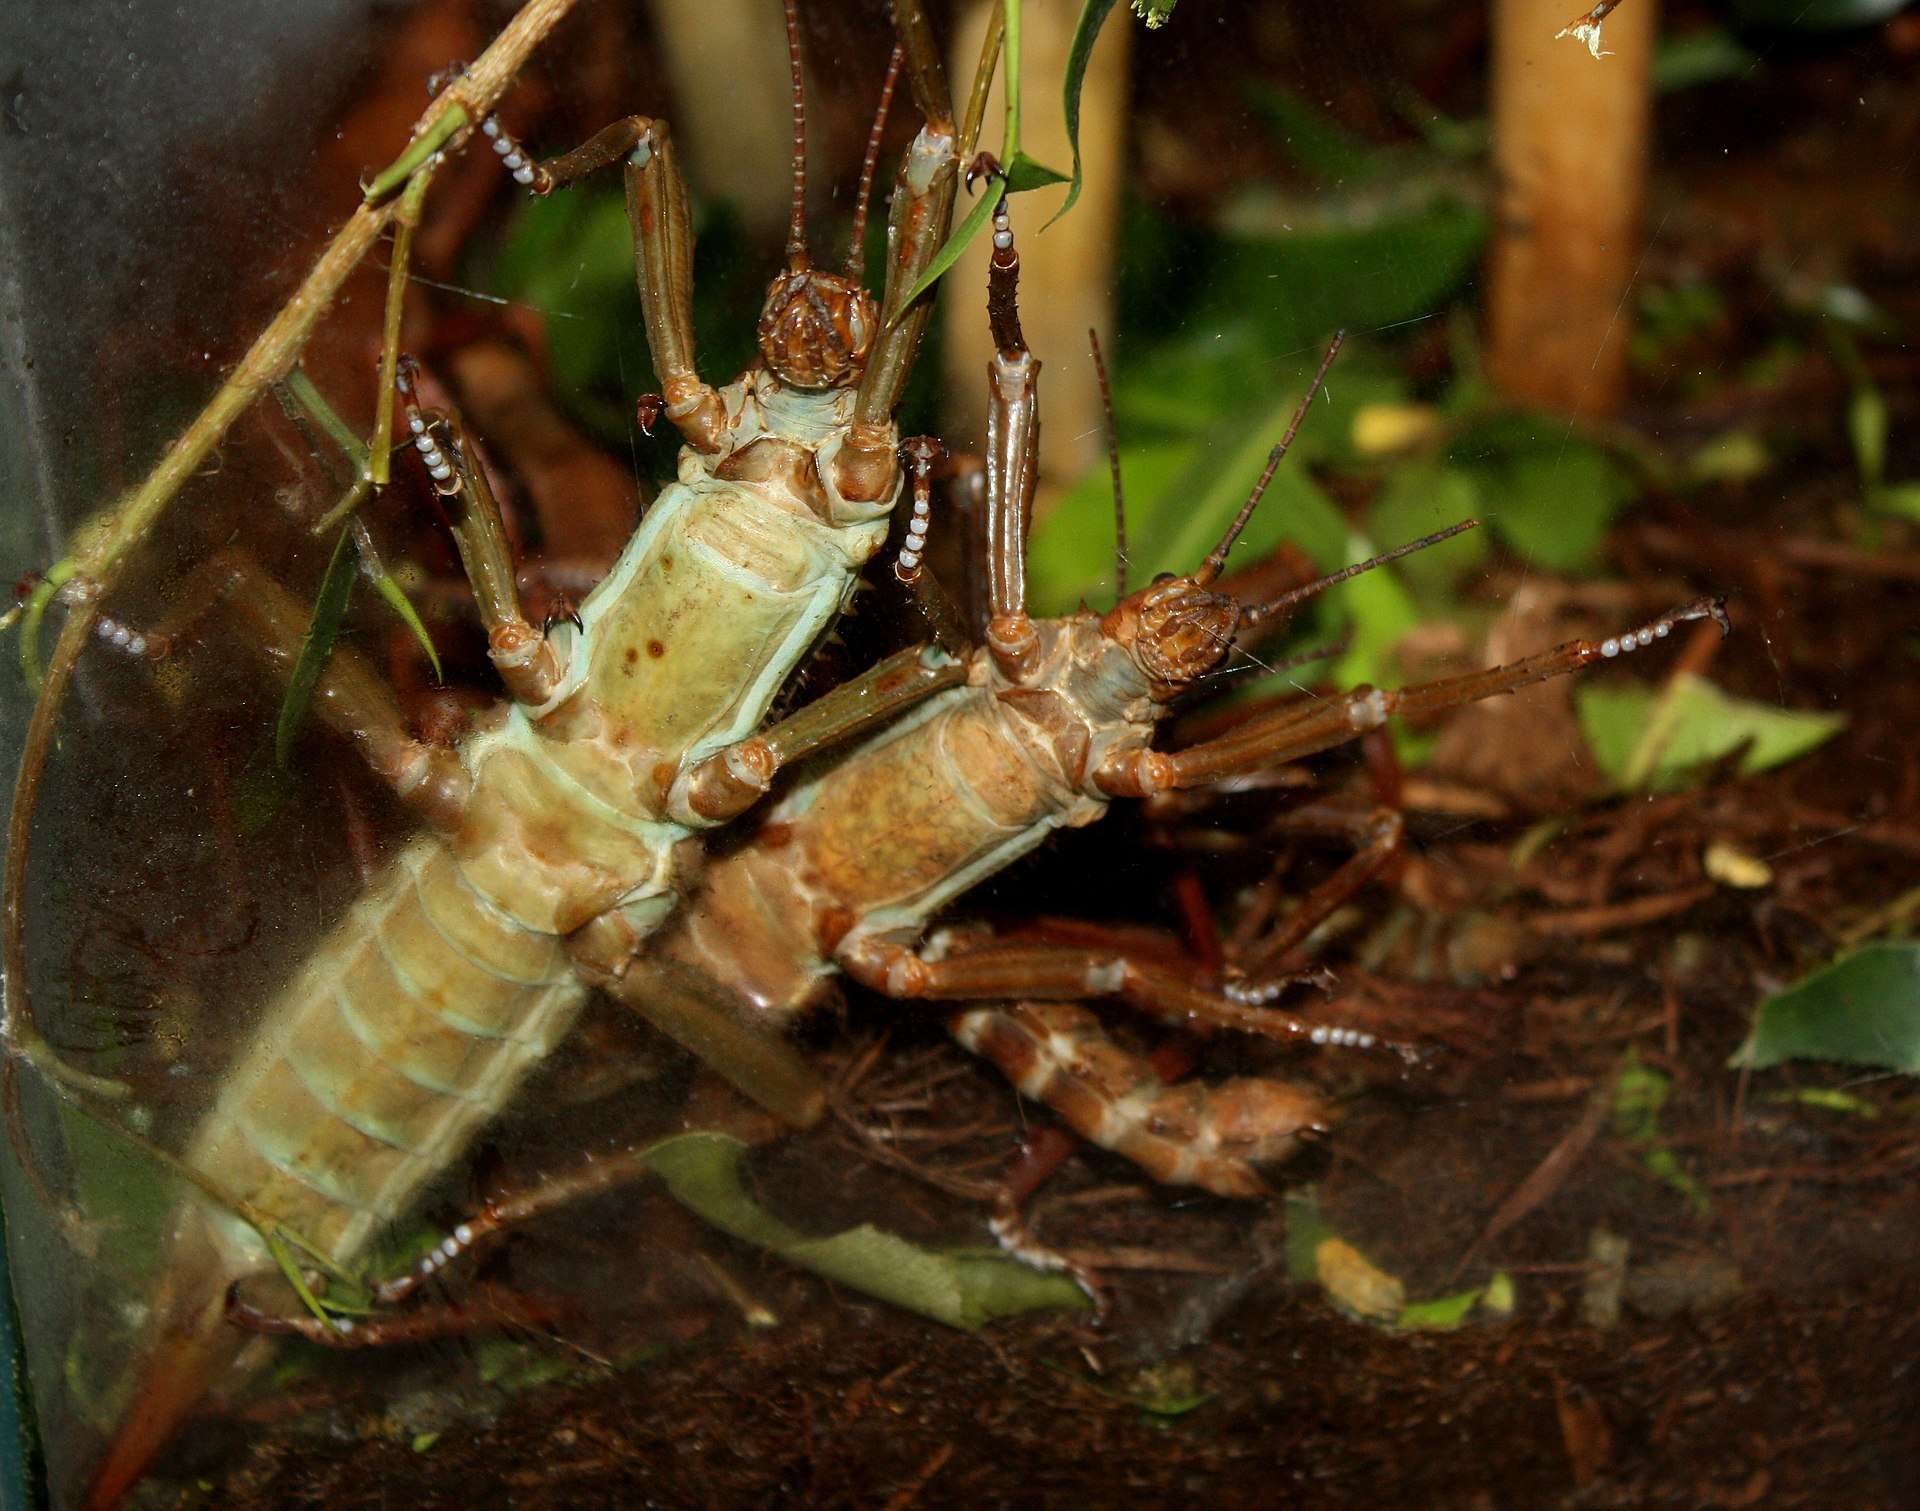 Thorny Stick Insect Poisonous Foods